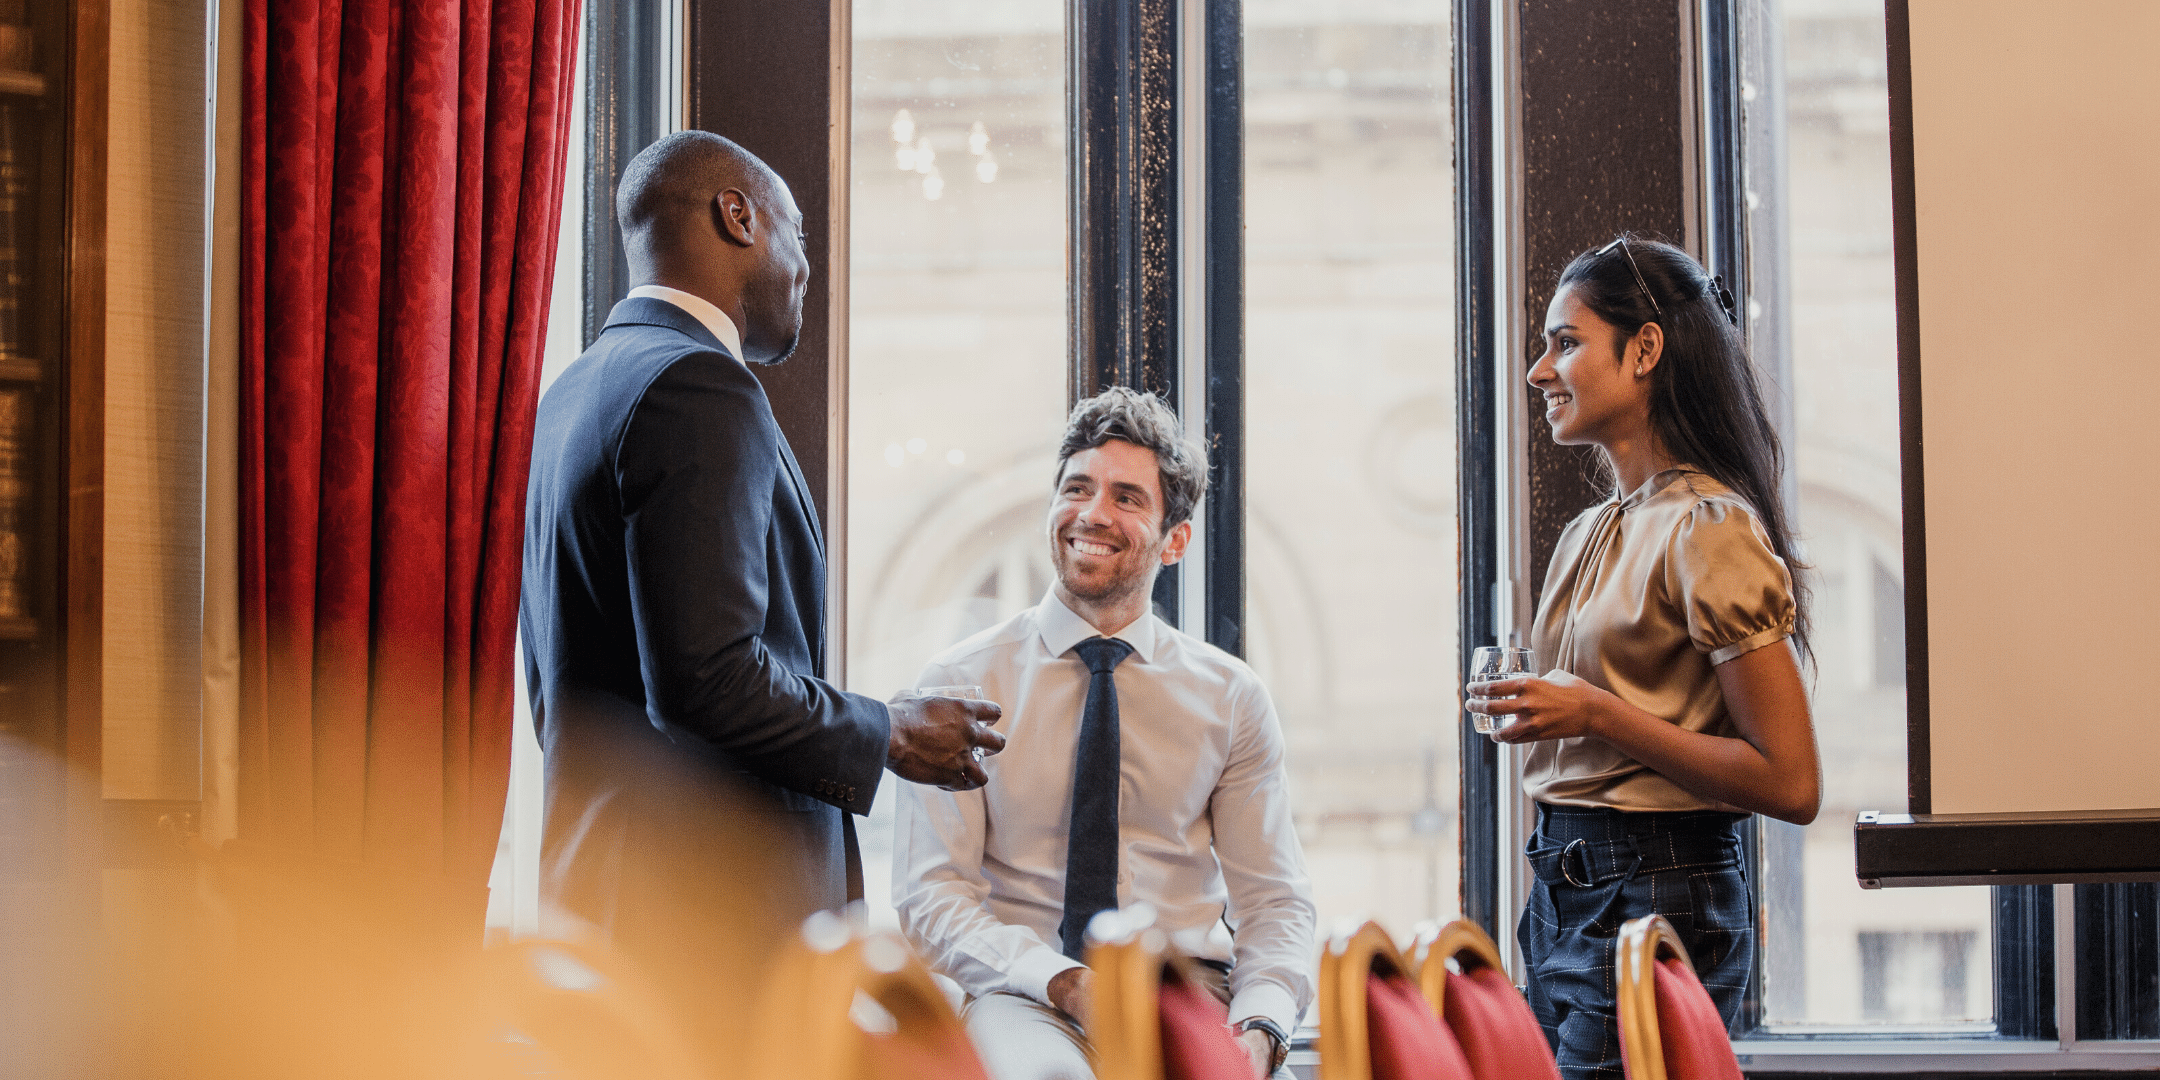 5 networking mistakes and how to avoid them